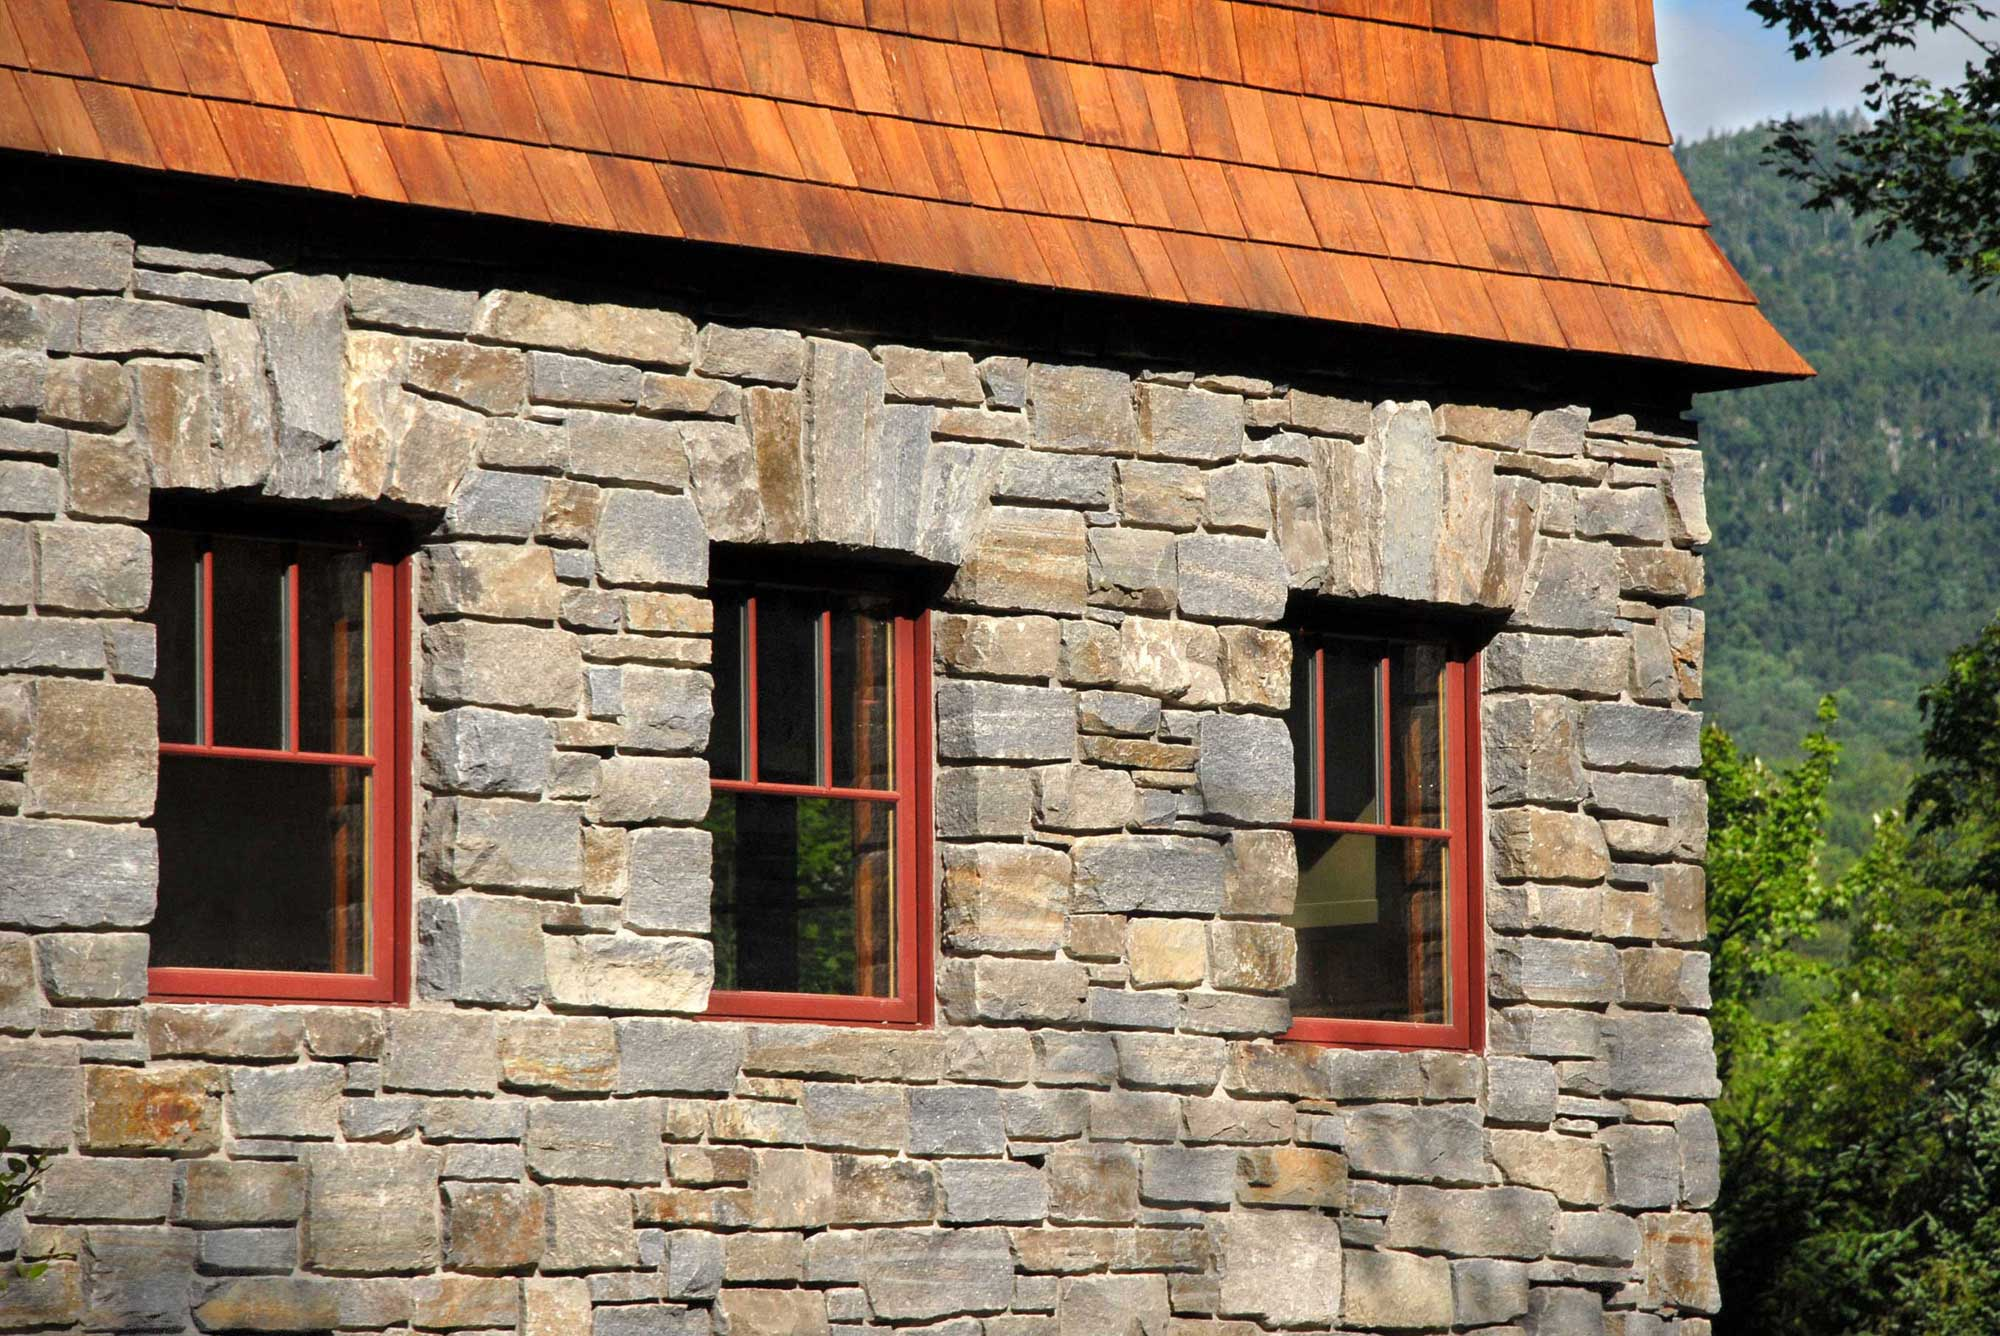 Granite blocks are used for the side of this home with three windows in the middle